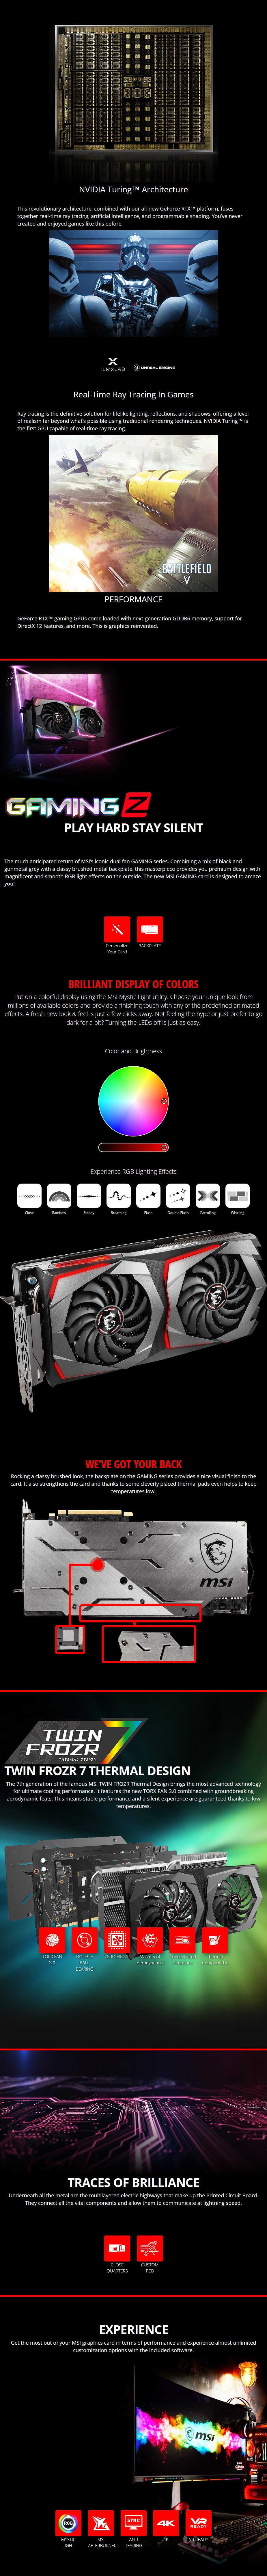 MSI GeForce RTX 2070 GAMING Z 8GB Video Card - Desktop Overview 1